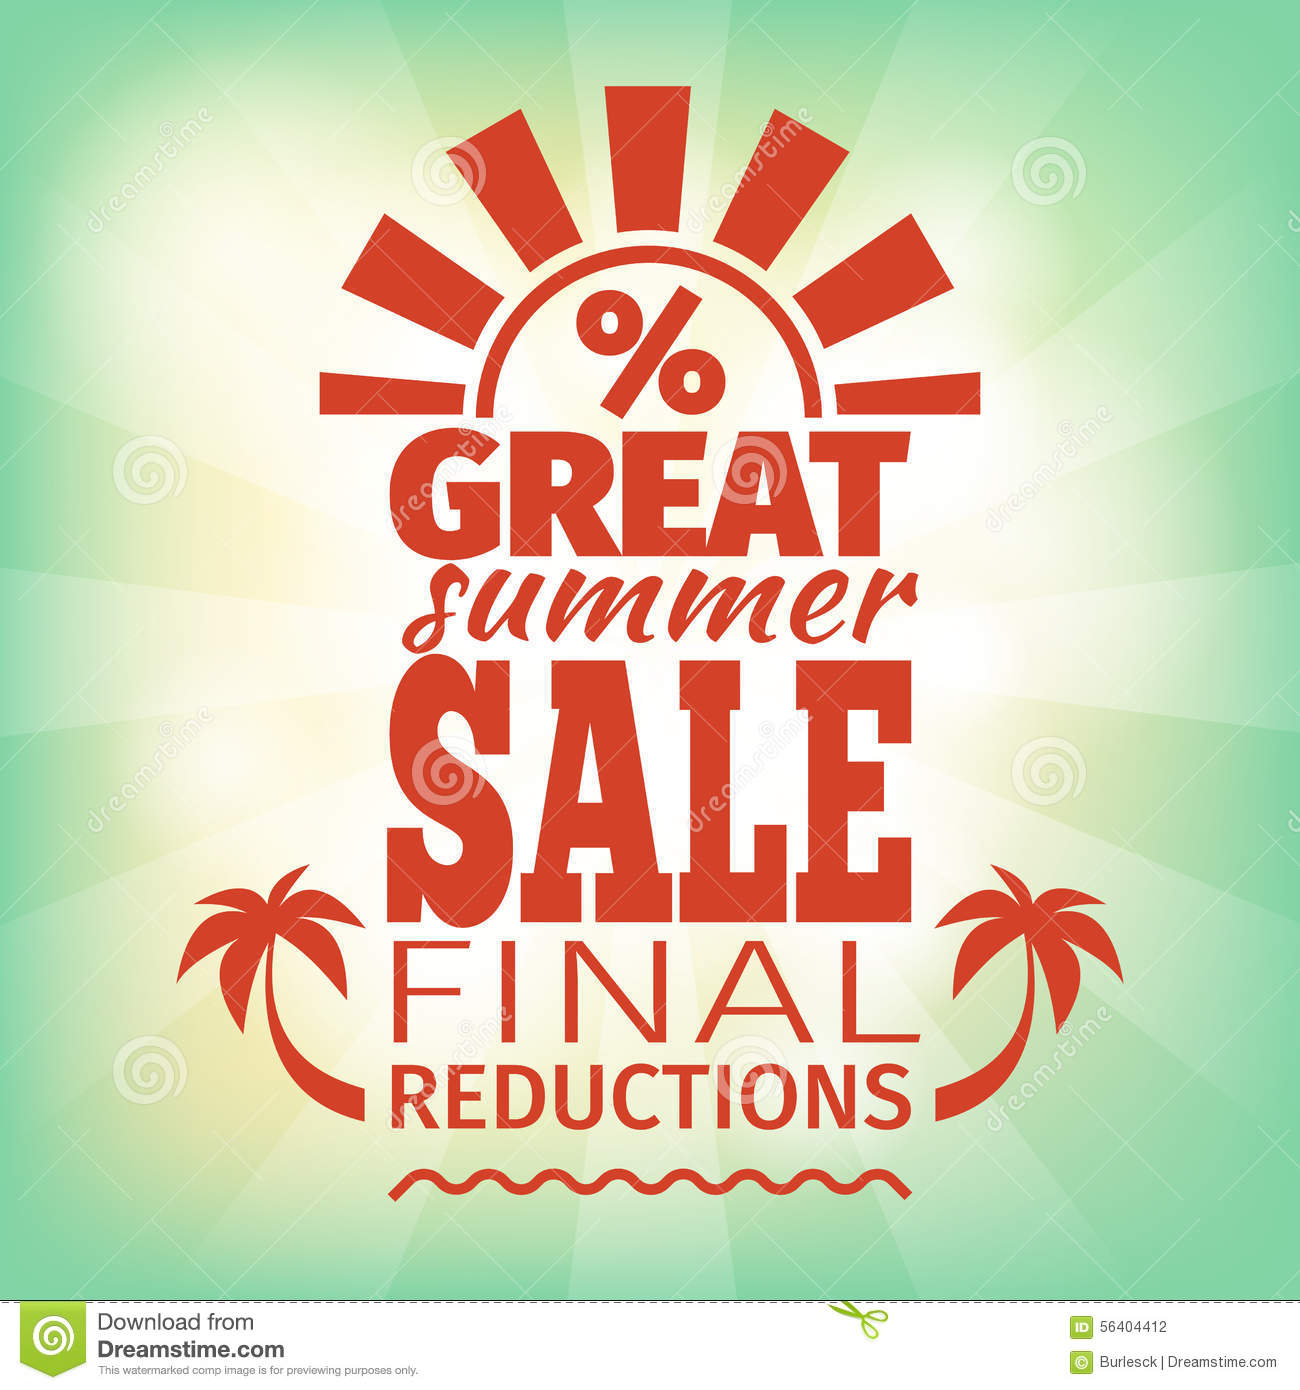 Summer Sale Poster Stock Vector - Image: 56404412